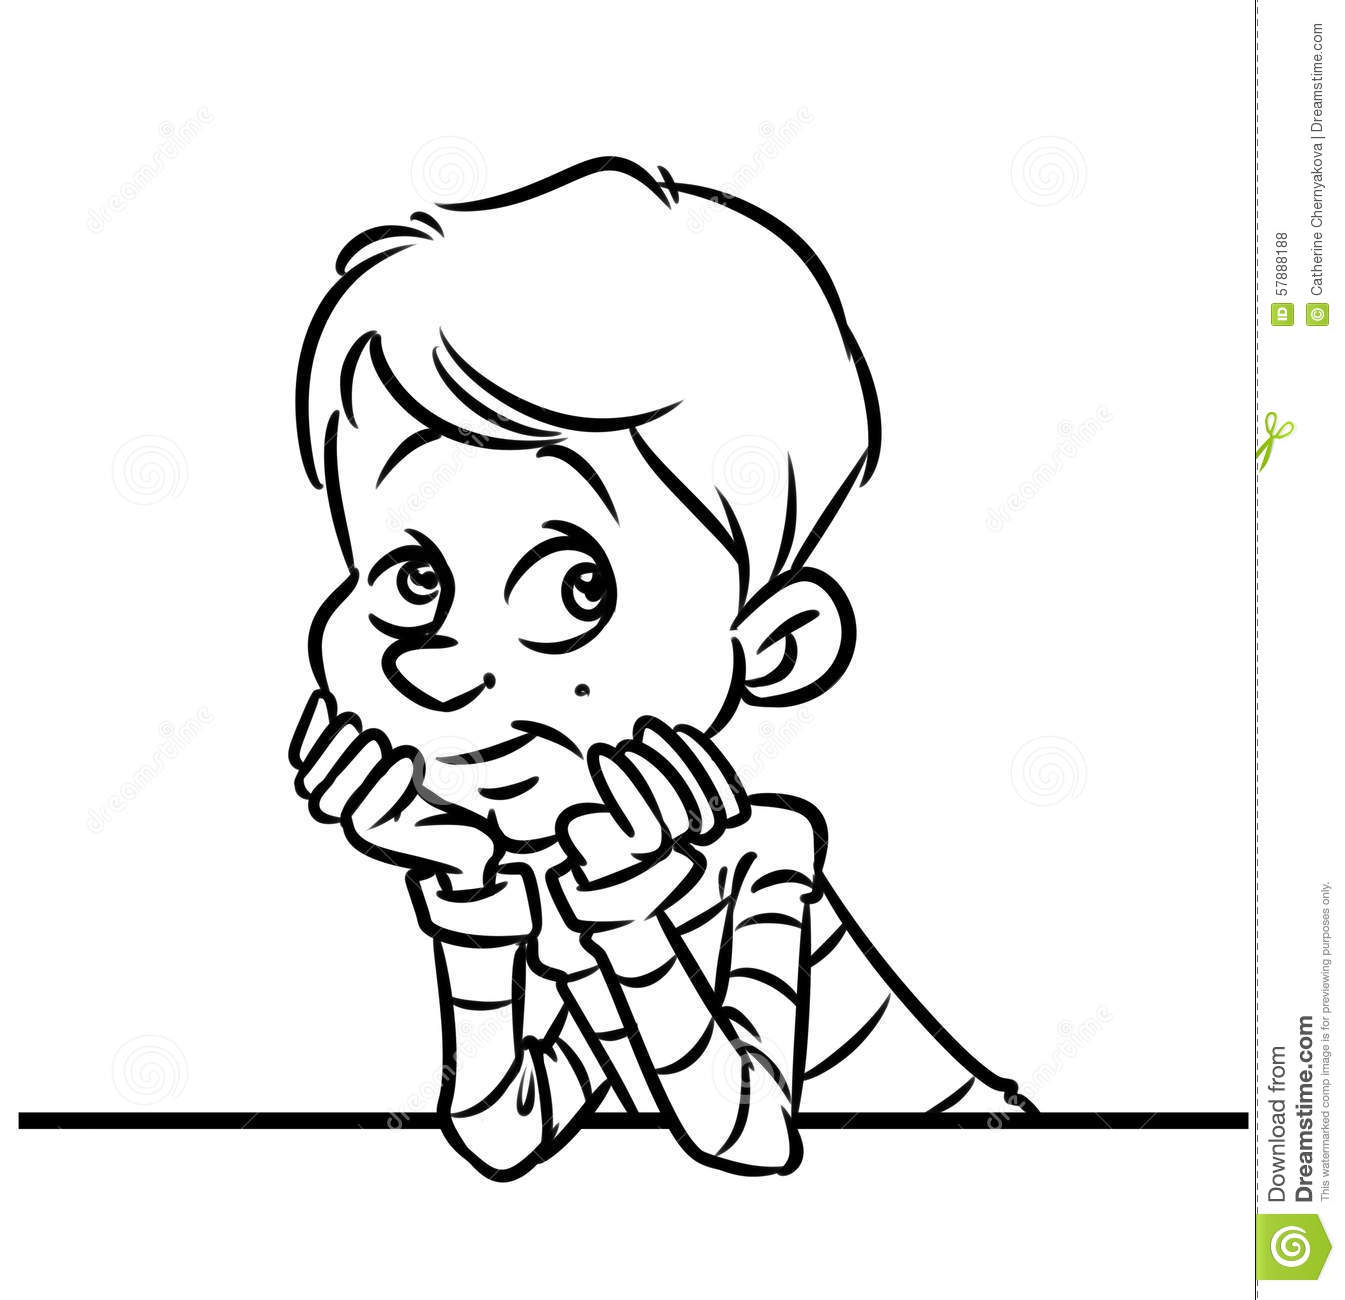 Child Waiting Clipart.